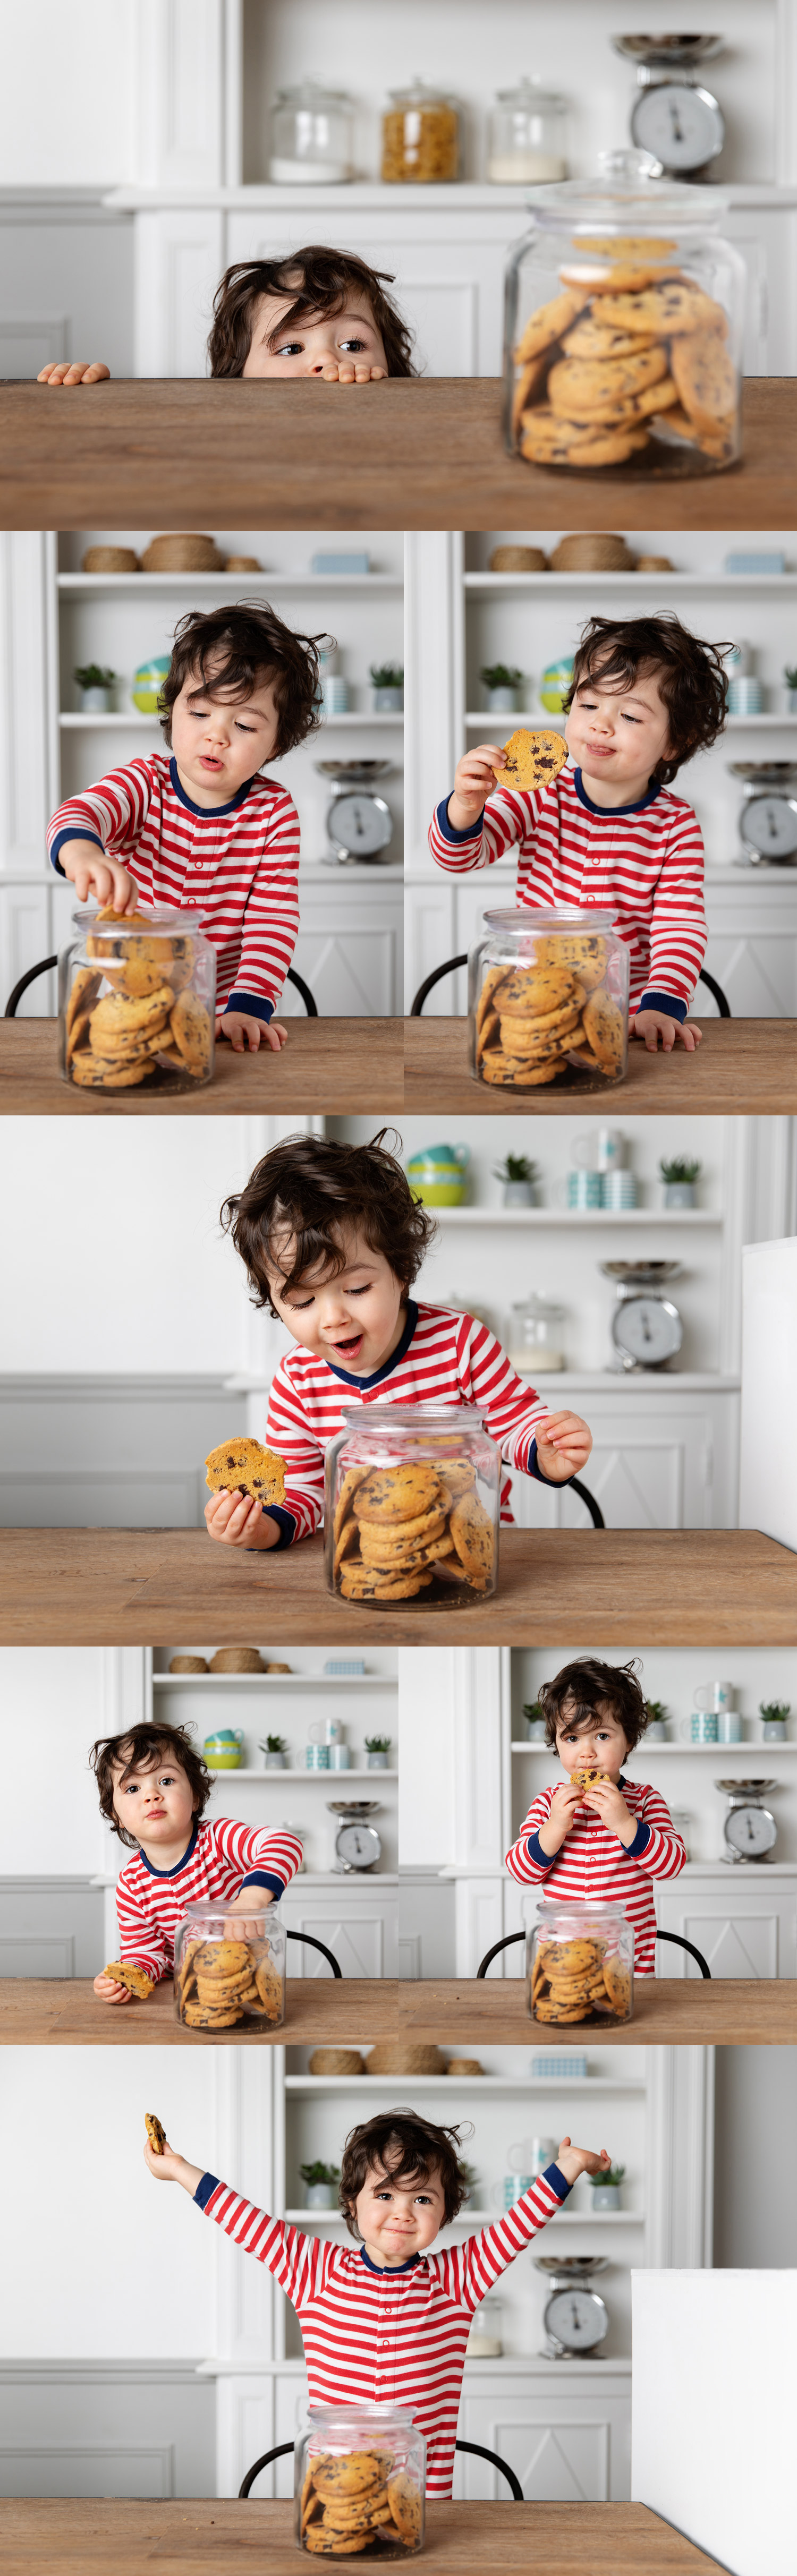 Advertising-kids-photographer-cookies.jpg